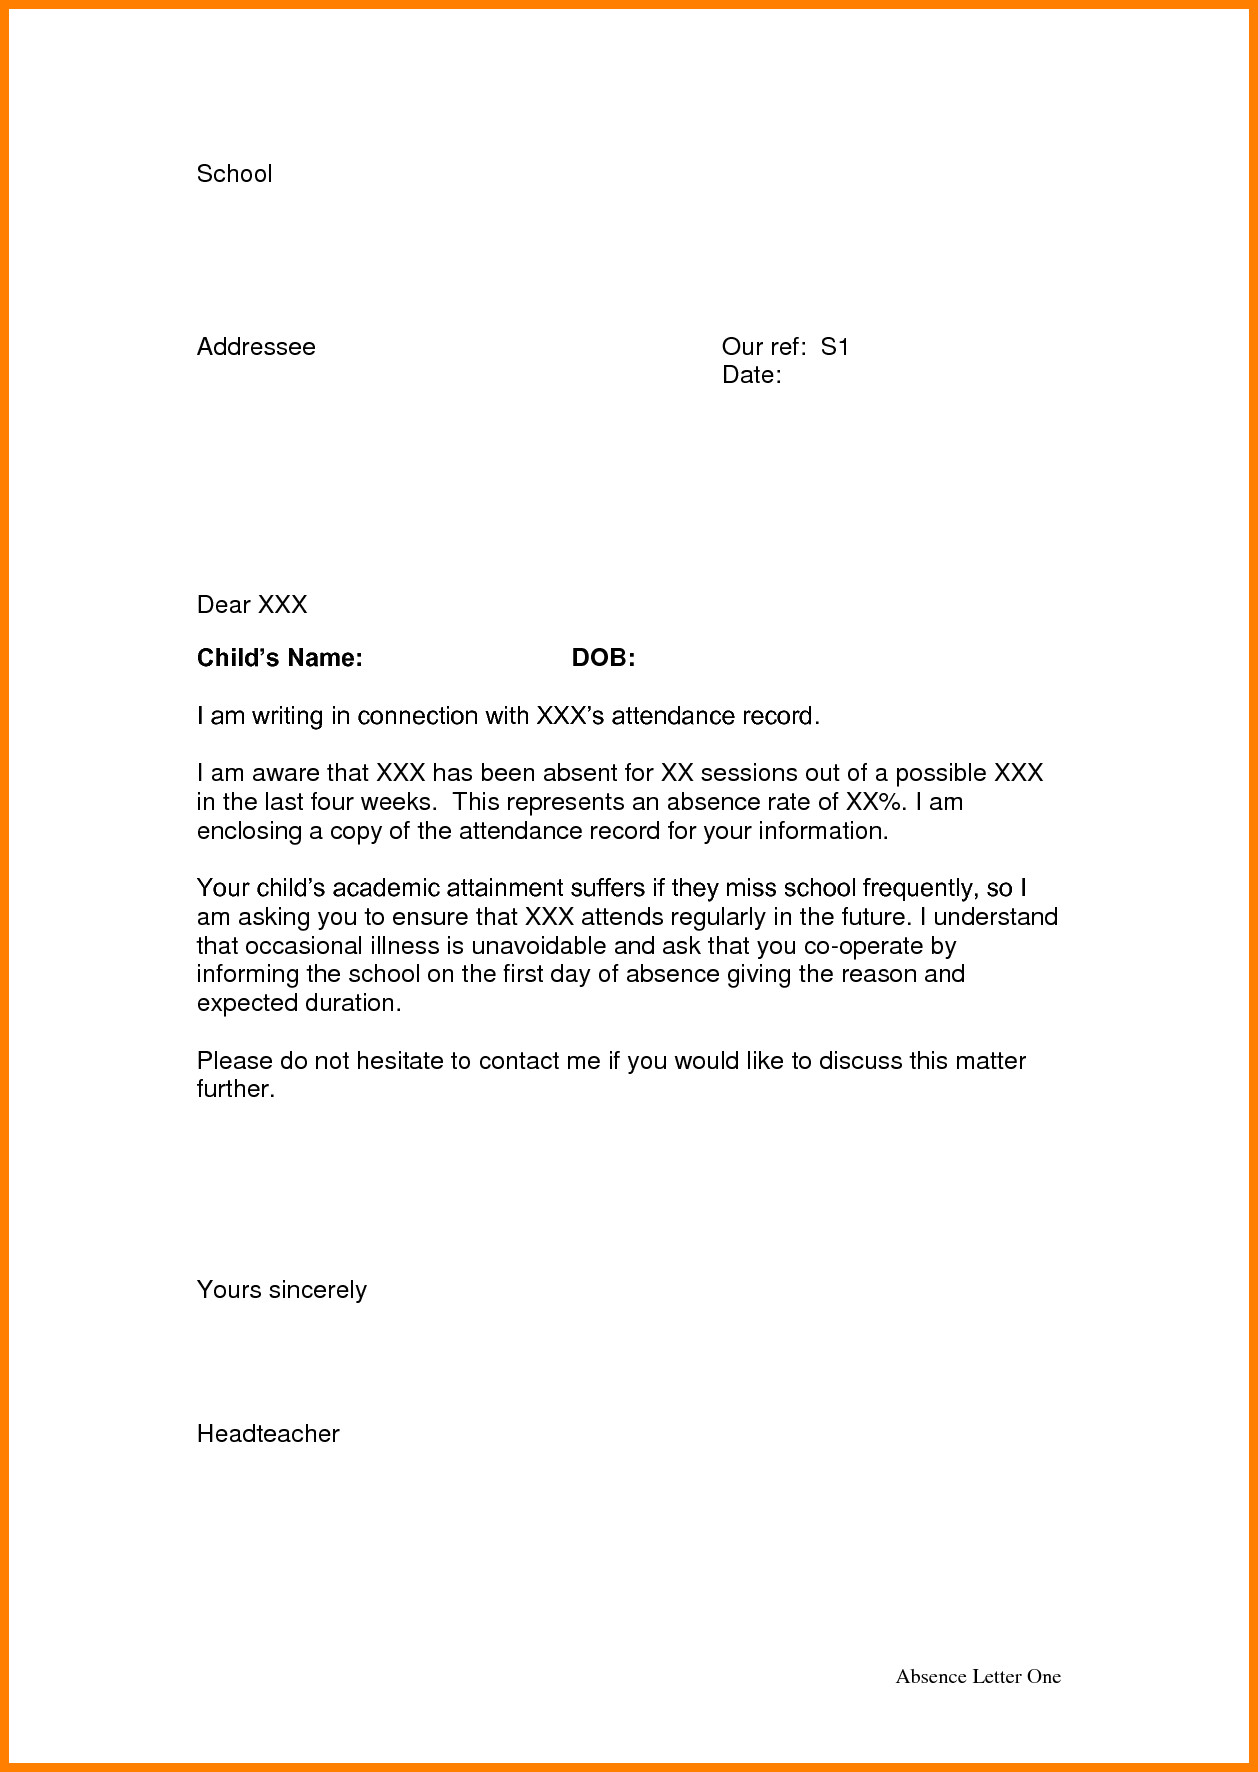 Absent Letters for School 3 Absence Letter From School Appeal Leter